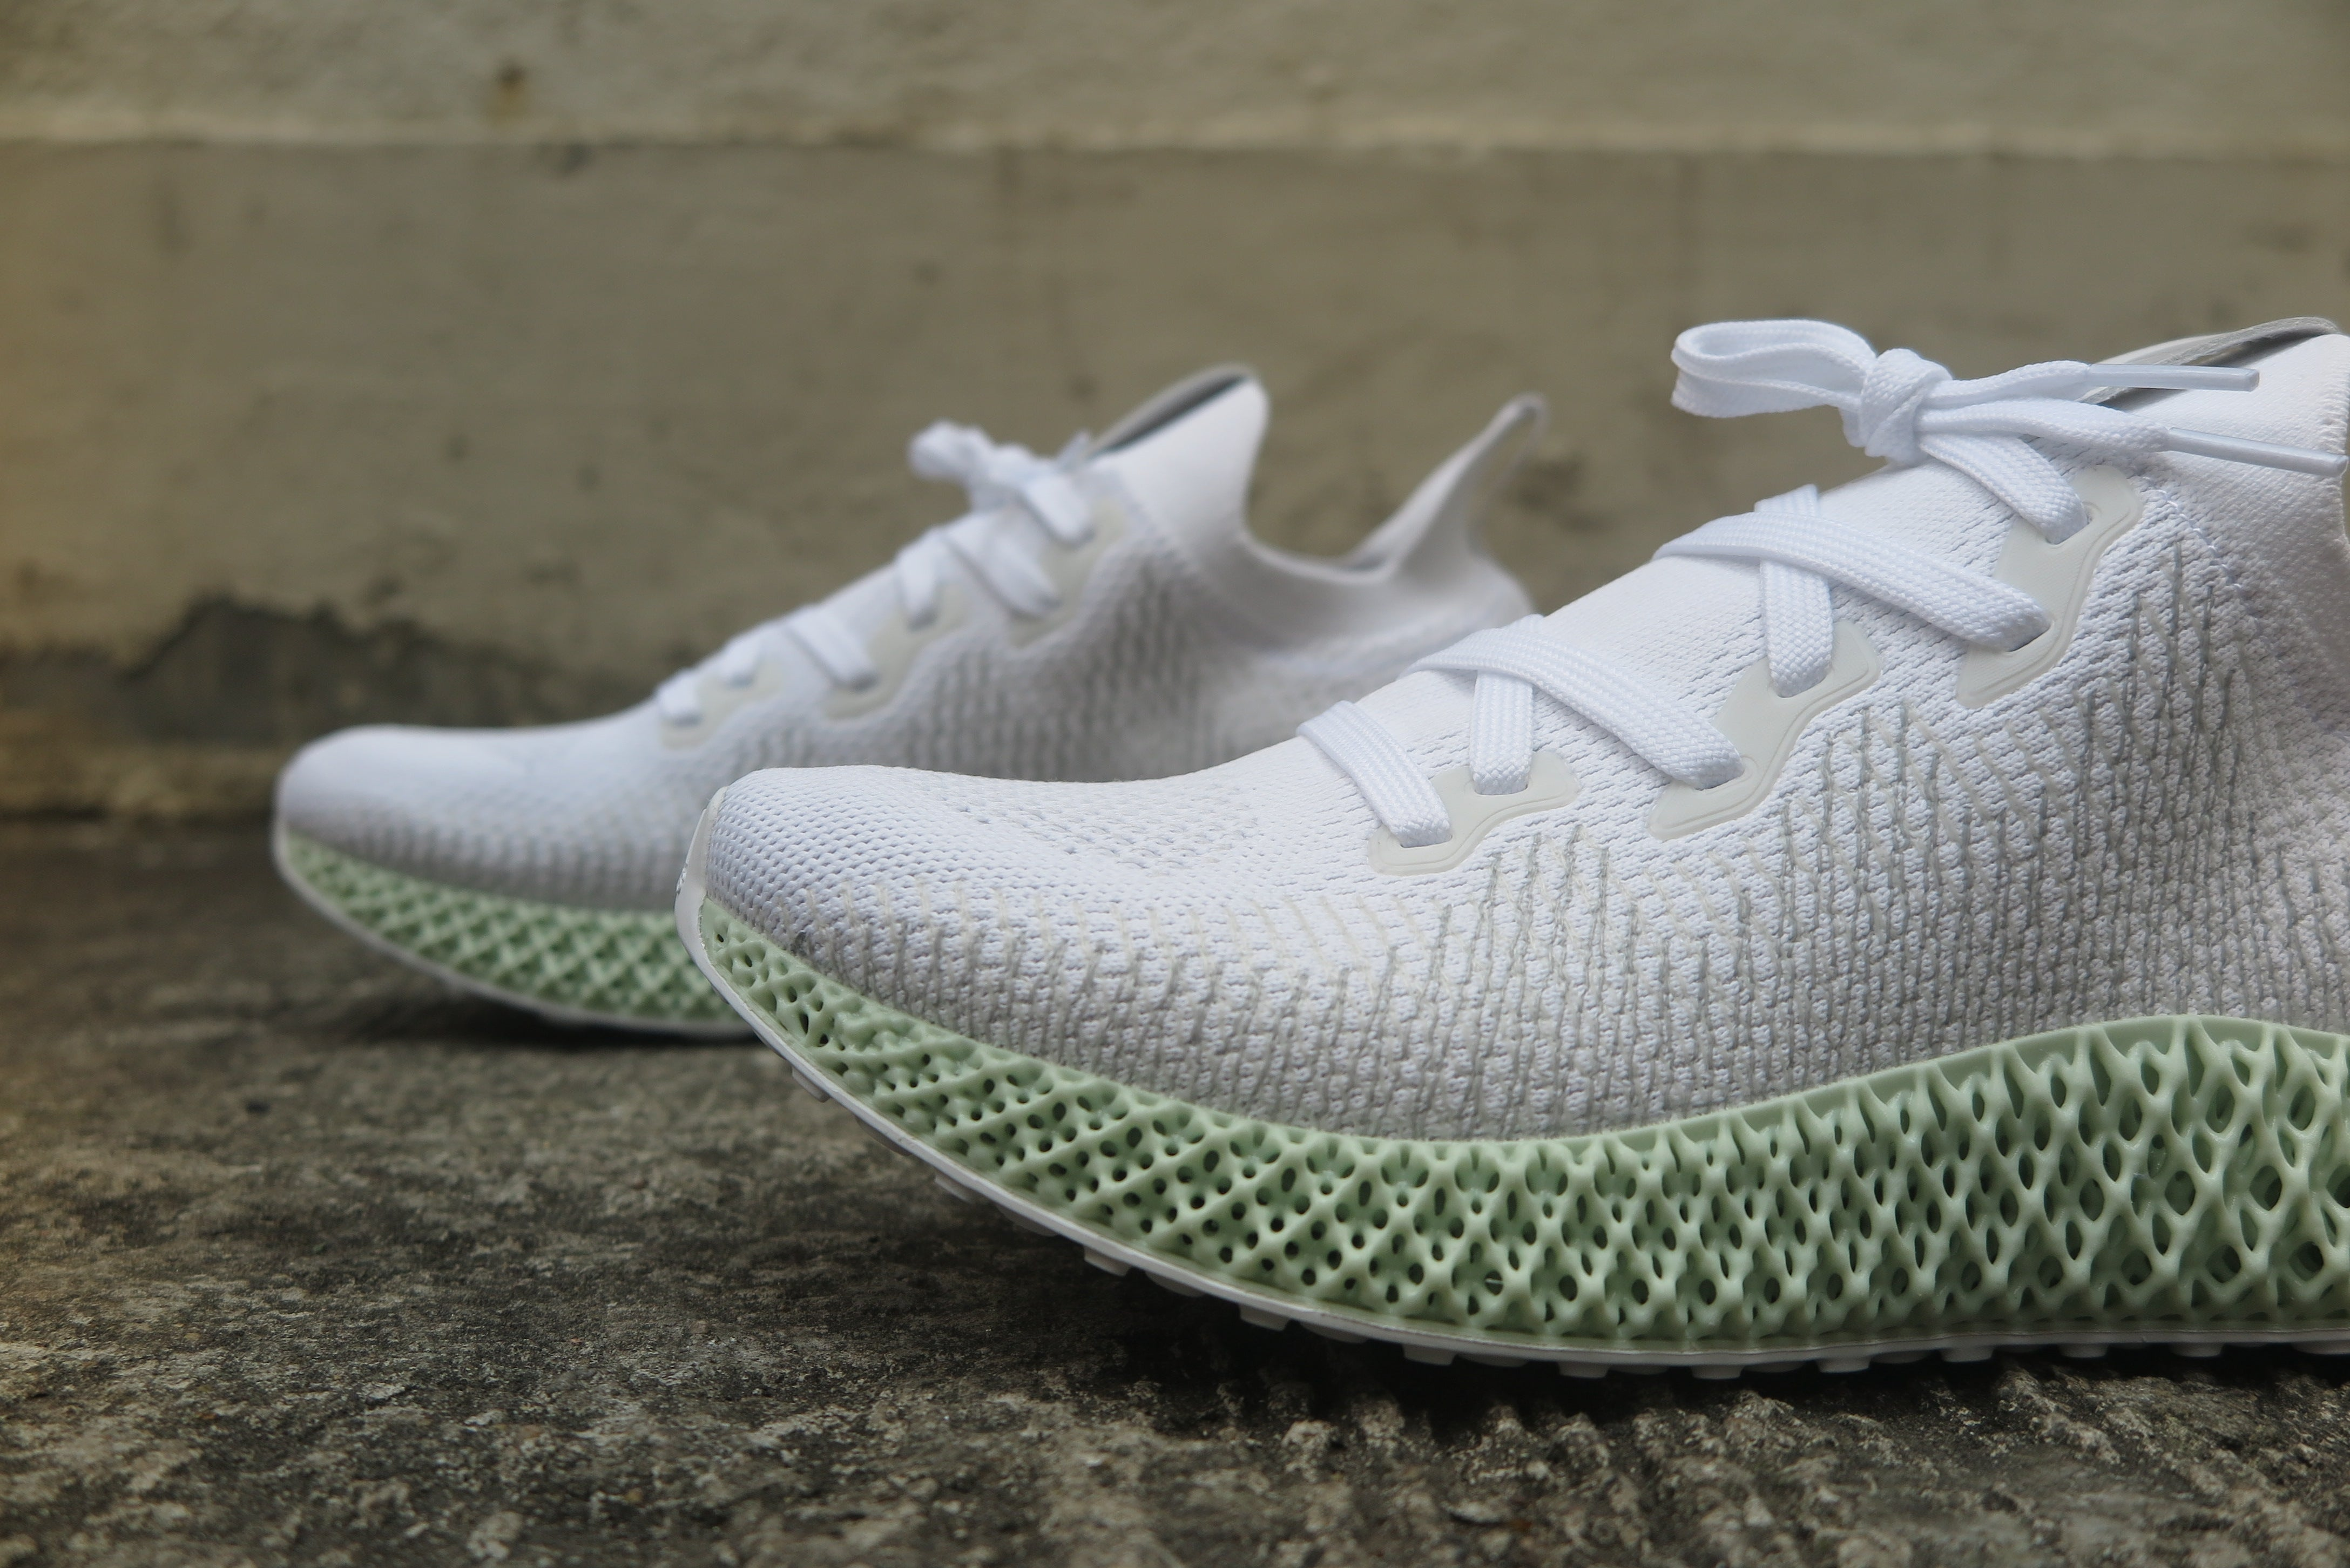 adidas Alphaedge 4D - Footwear White/Grey Two/Core Black #CG5526-Preorder Item-Navy Selected Shop